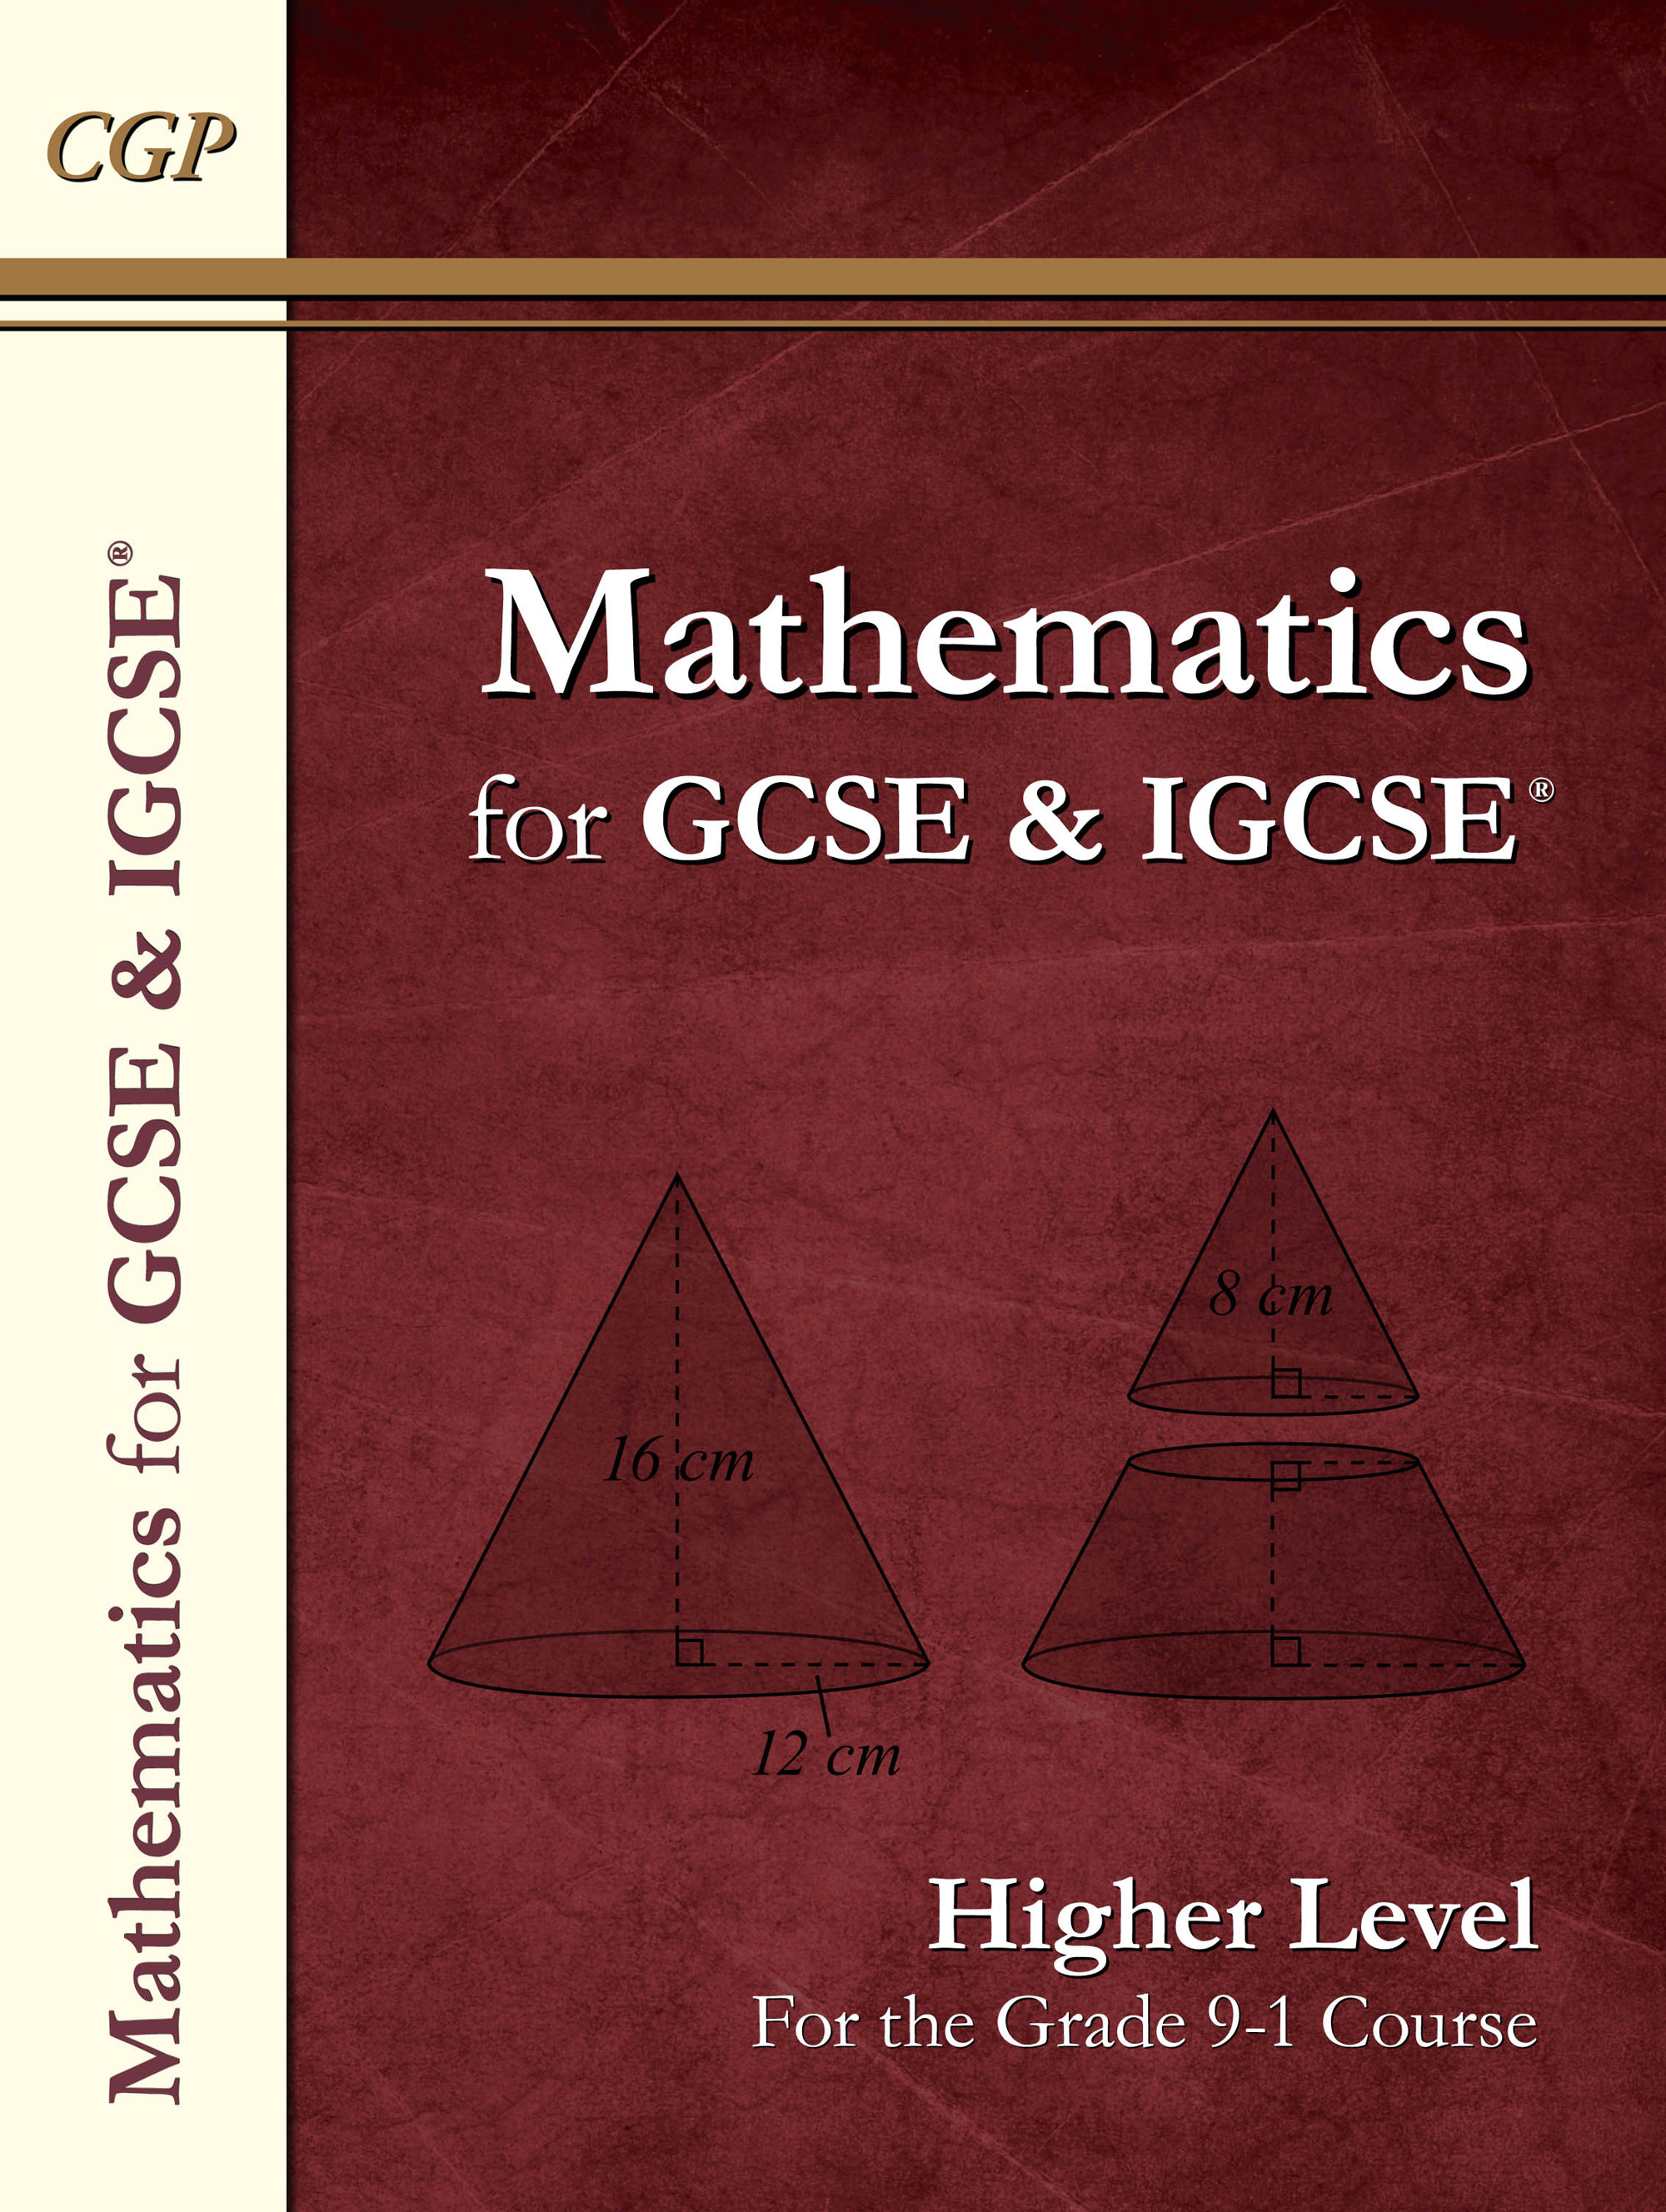 MHN43DK - New Maths for GCSE and IGCSE® Textbook, Higher (for the Grade 9-1 Course)